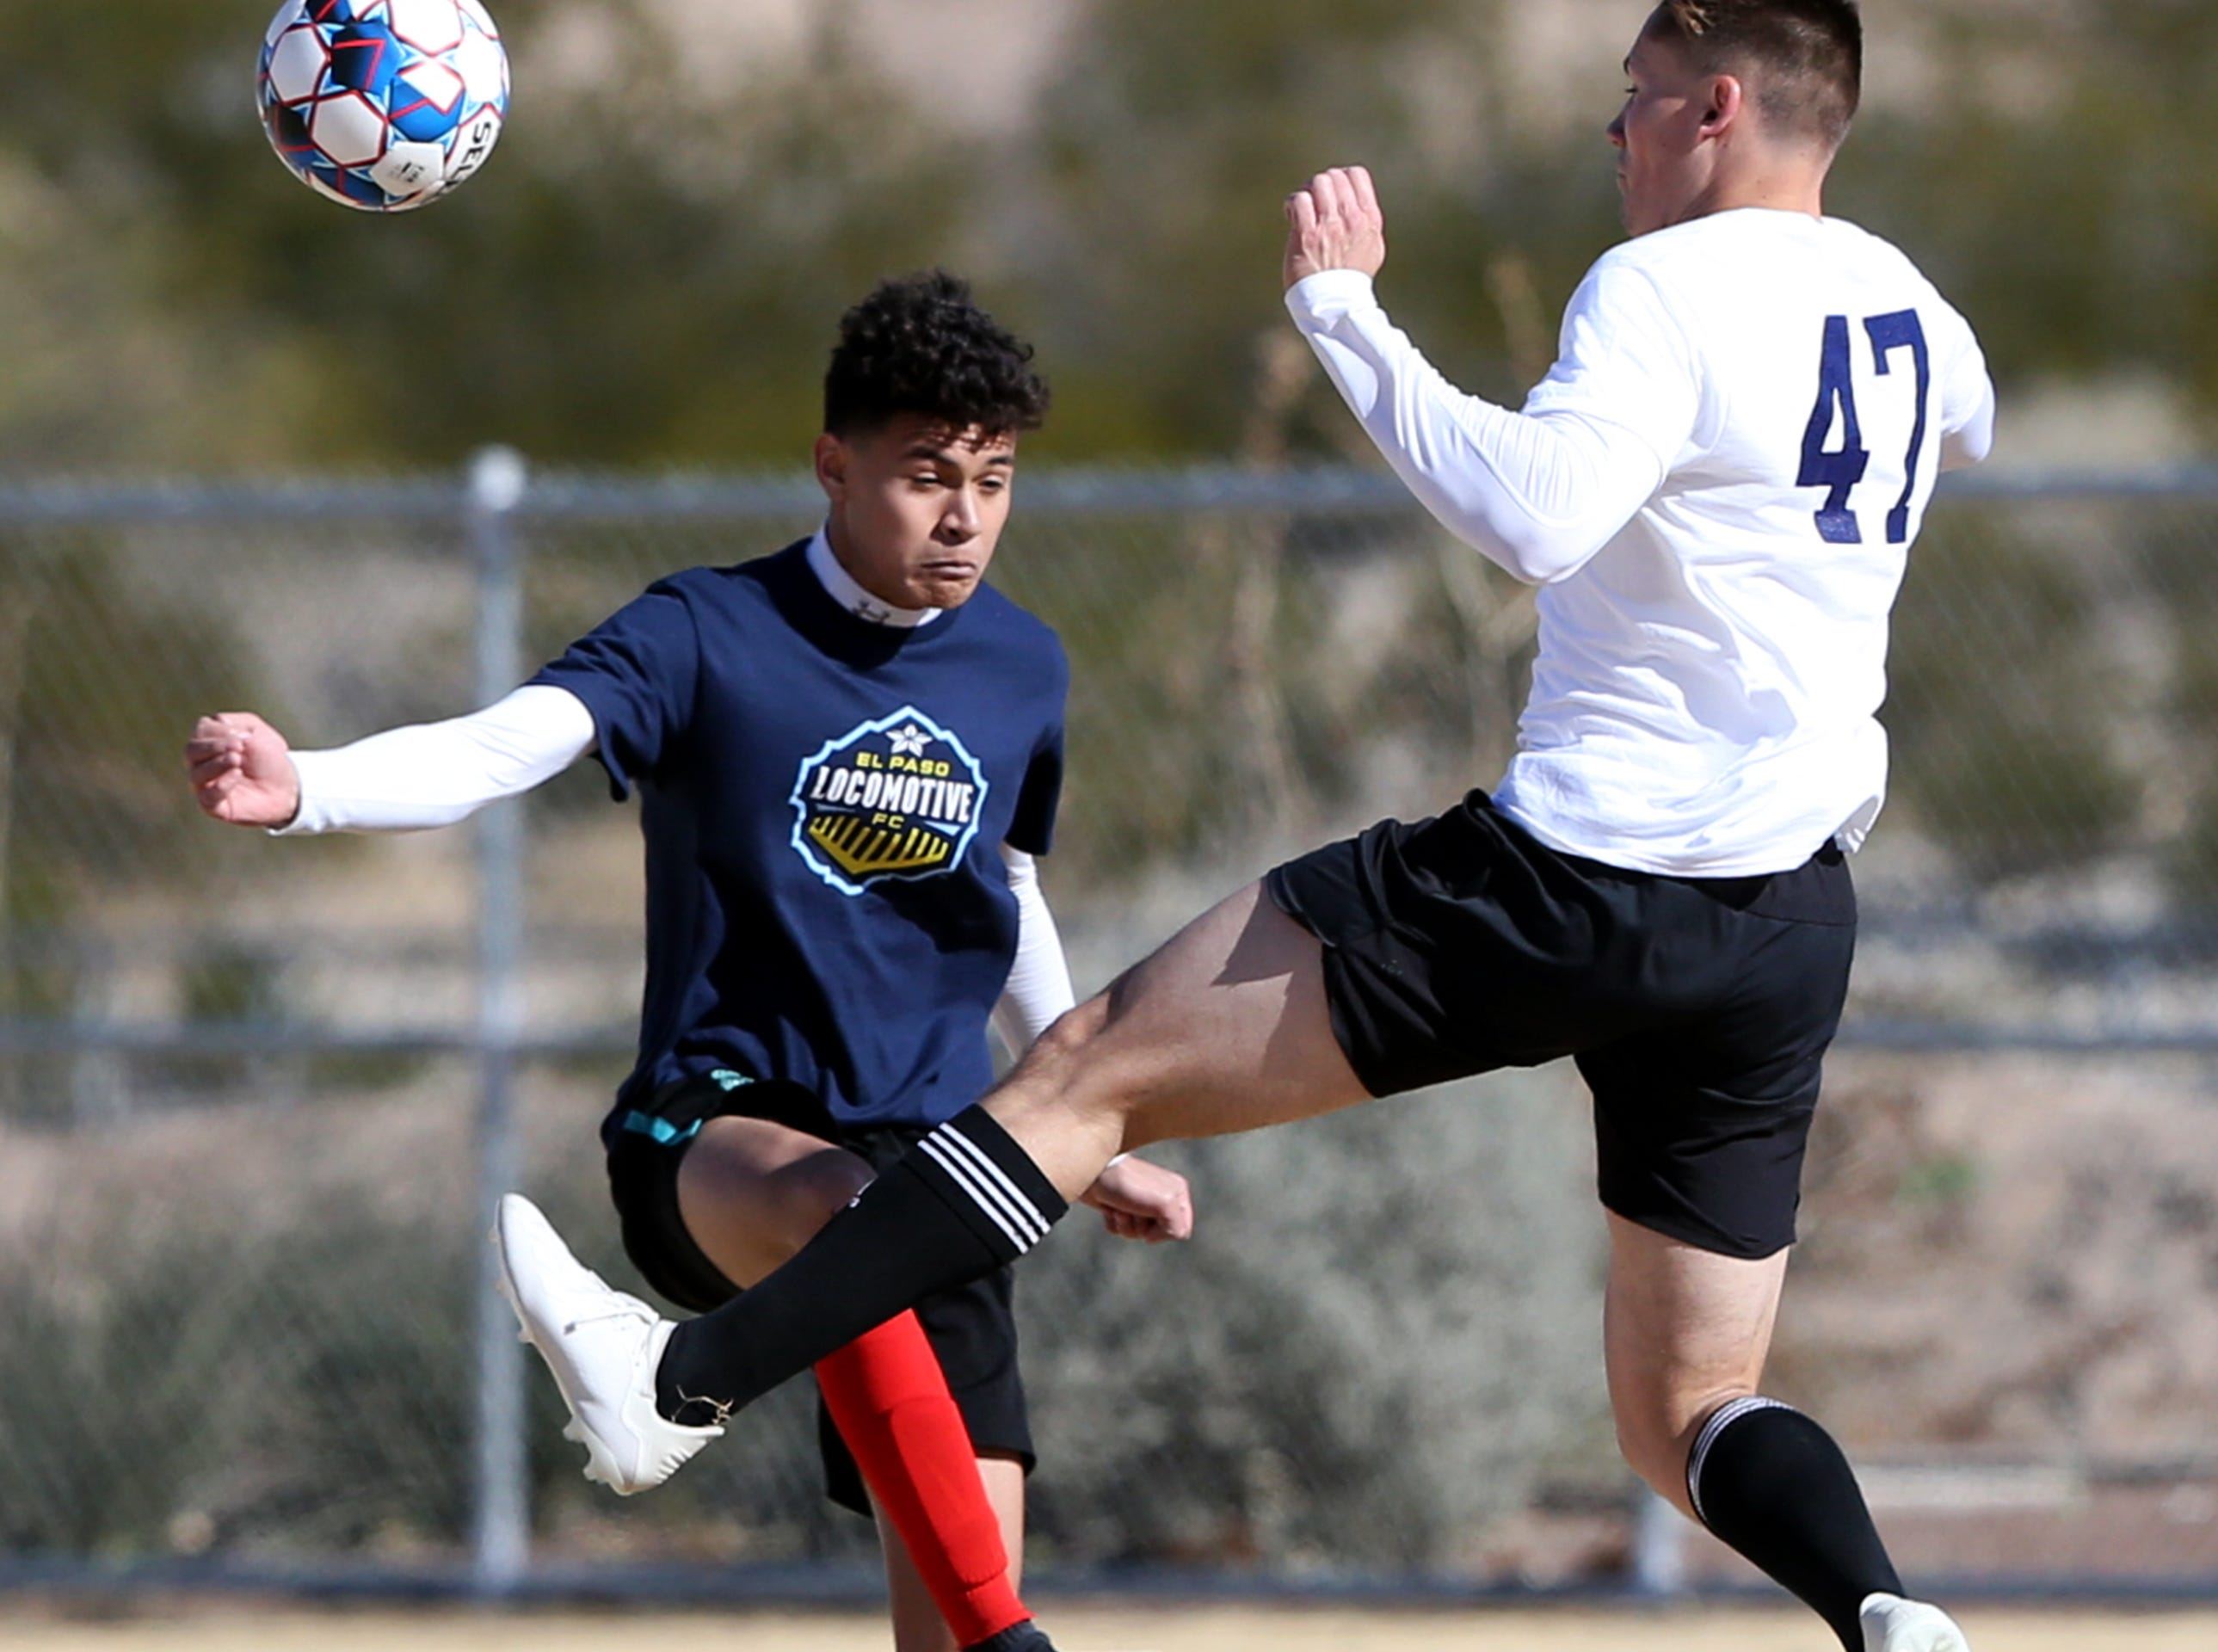 """Soccer players strut their stuff on the field during a weekend tryout hosted by the El Paso Locomotive FC at Blackie Chesher Park in El Paso's Lower Valley. Locomotive head coach Mark Lowry said 100 players turned out during the tryout  """"What were doing right now is building the reputation, were getting in connection and building a relation with the community. Thats what these events are about.'"""